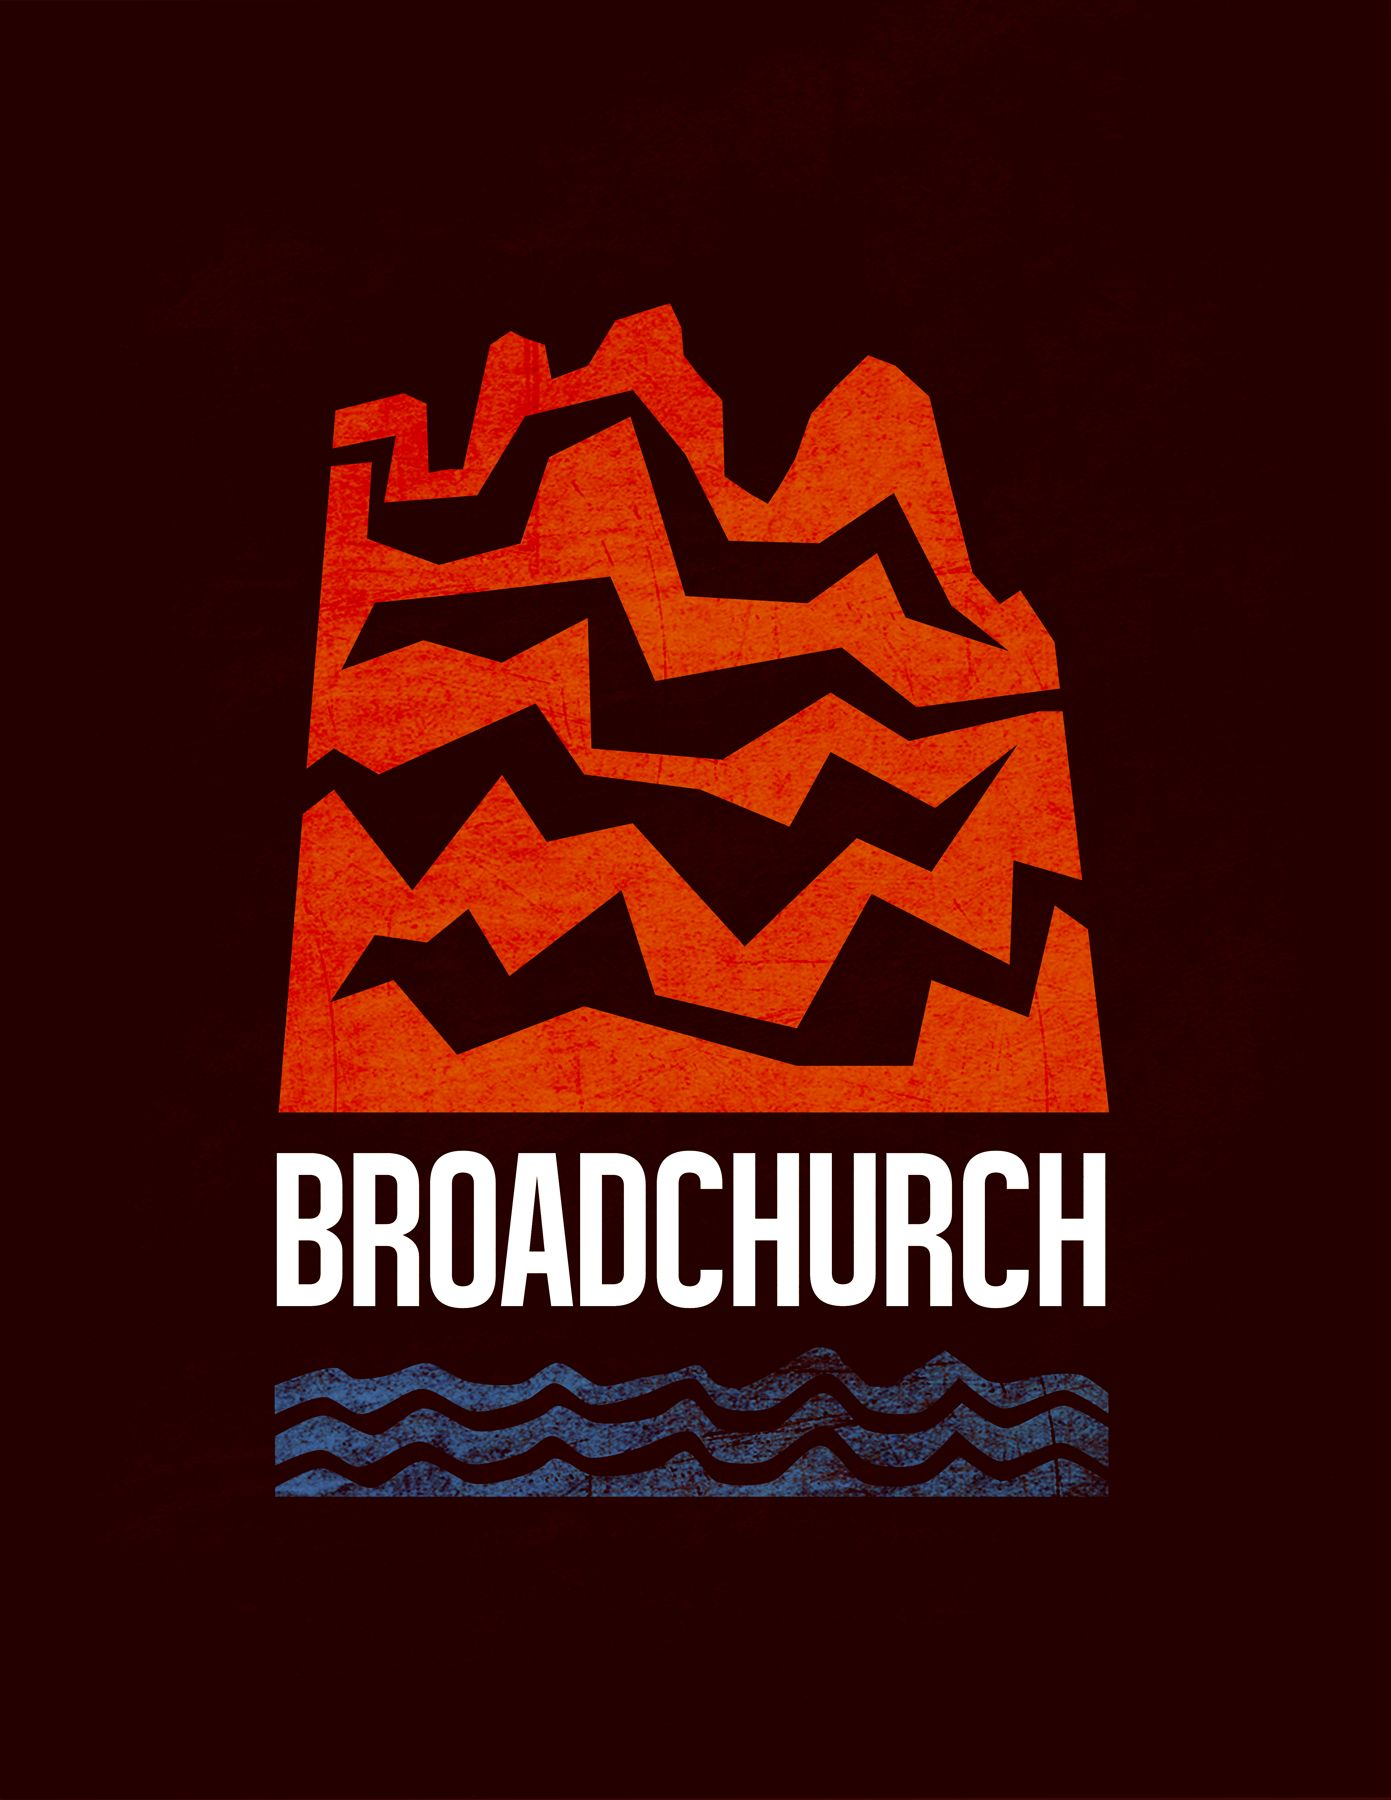 Logo for Broadchurch. #minimalist #minimal #poster #torn #edges #broadchurch #tvshows #television #shows